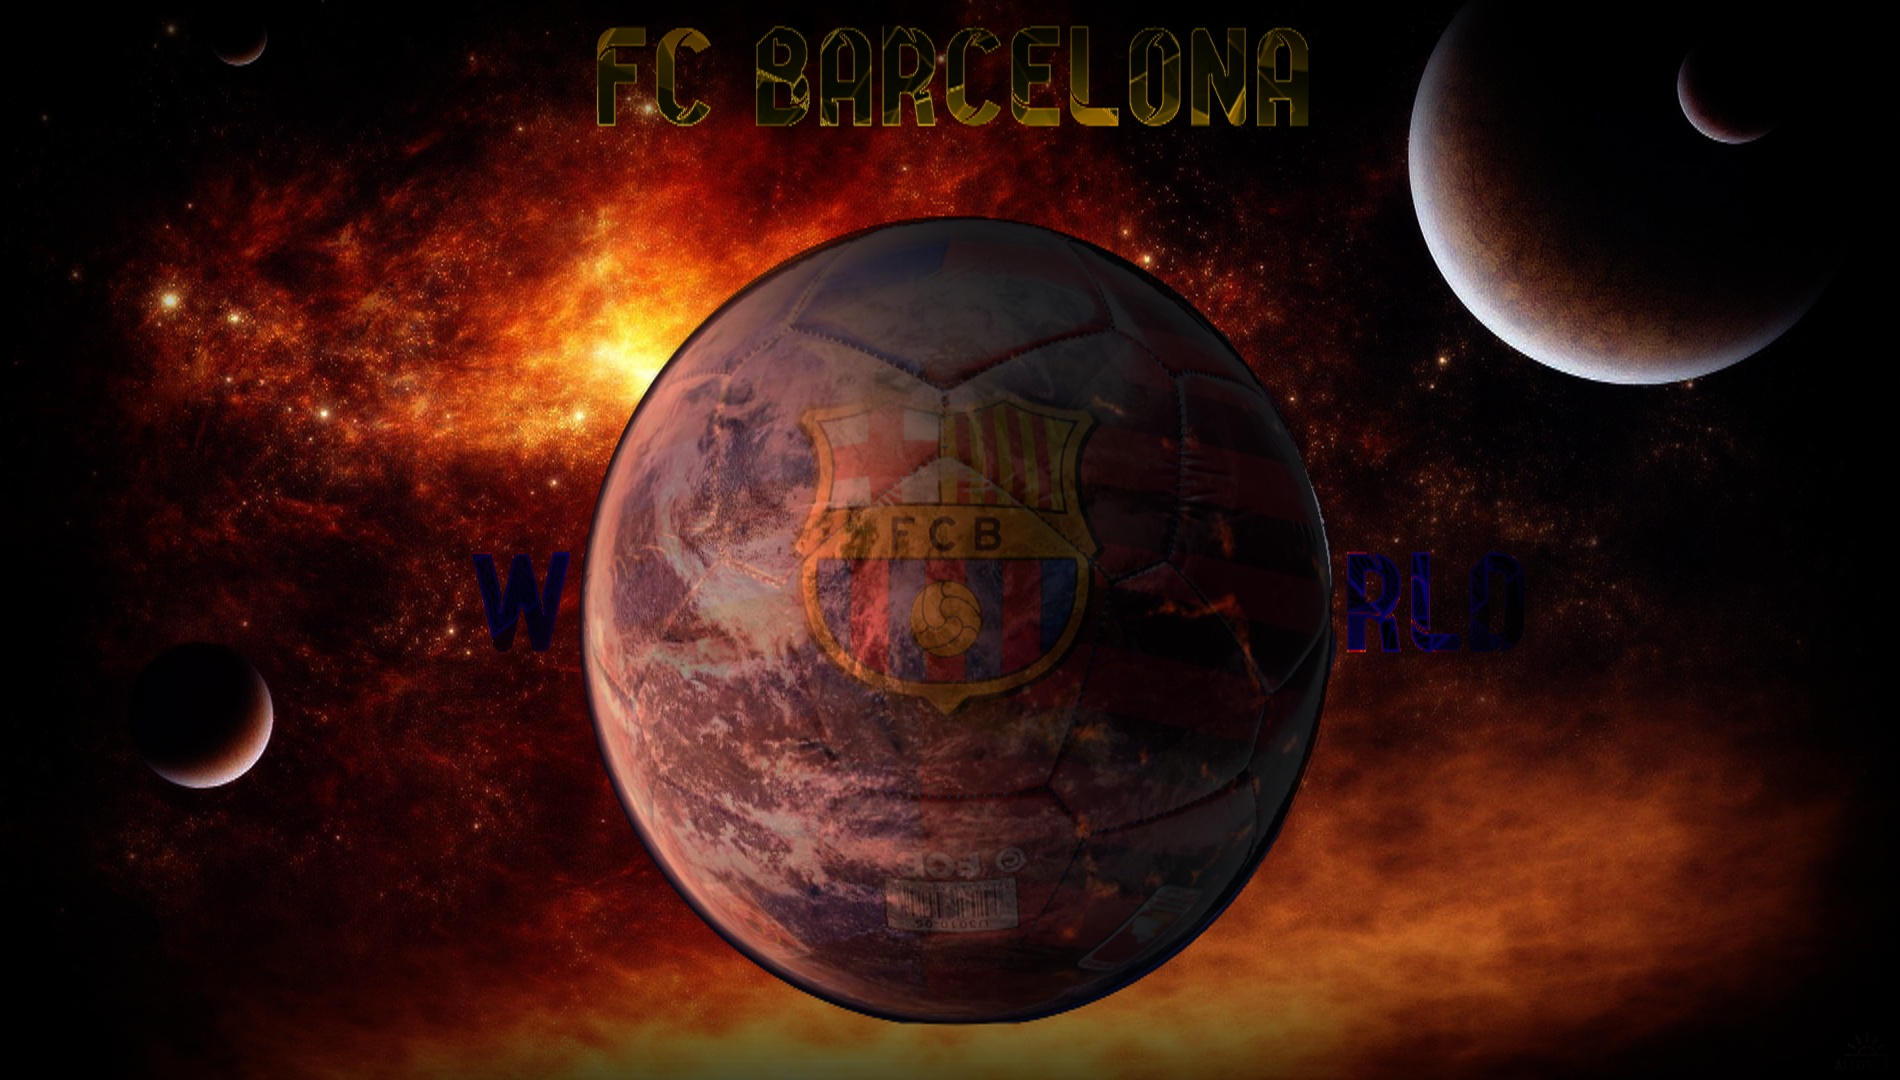 Barcelona Logo 3d Wallpaper Fc Barcelona World Wallpaper And Background Image